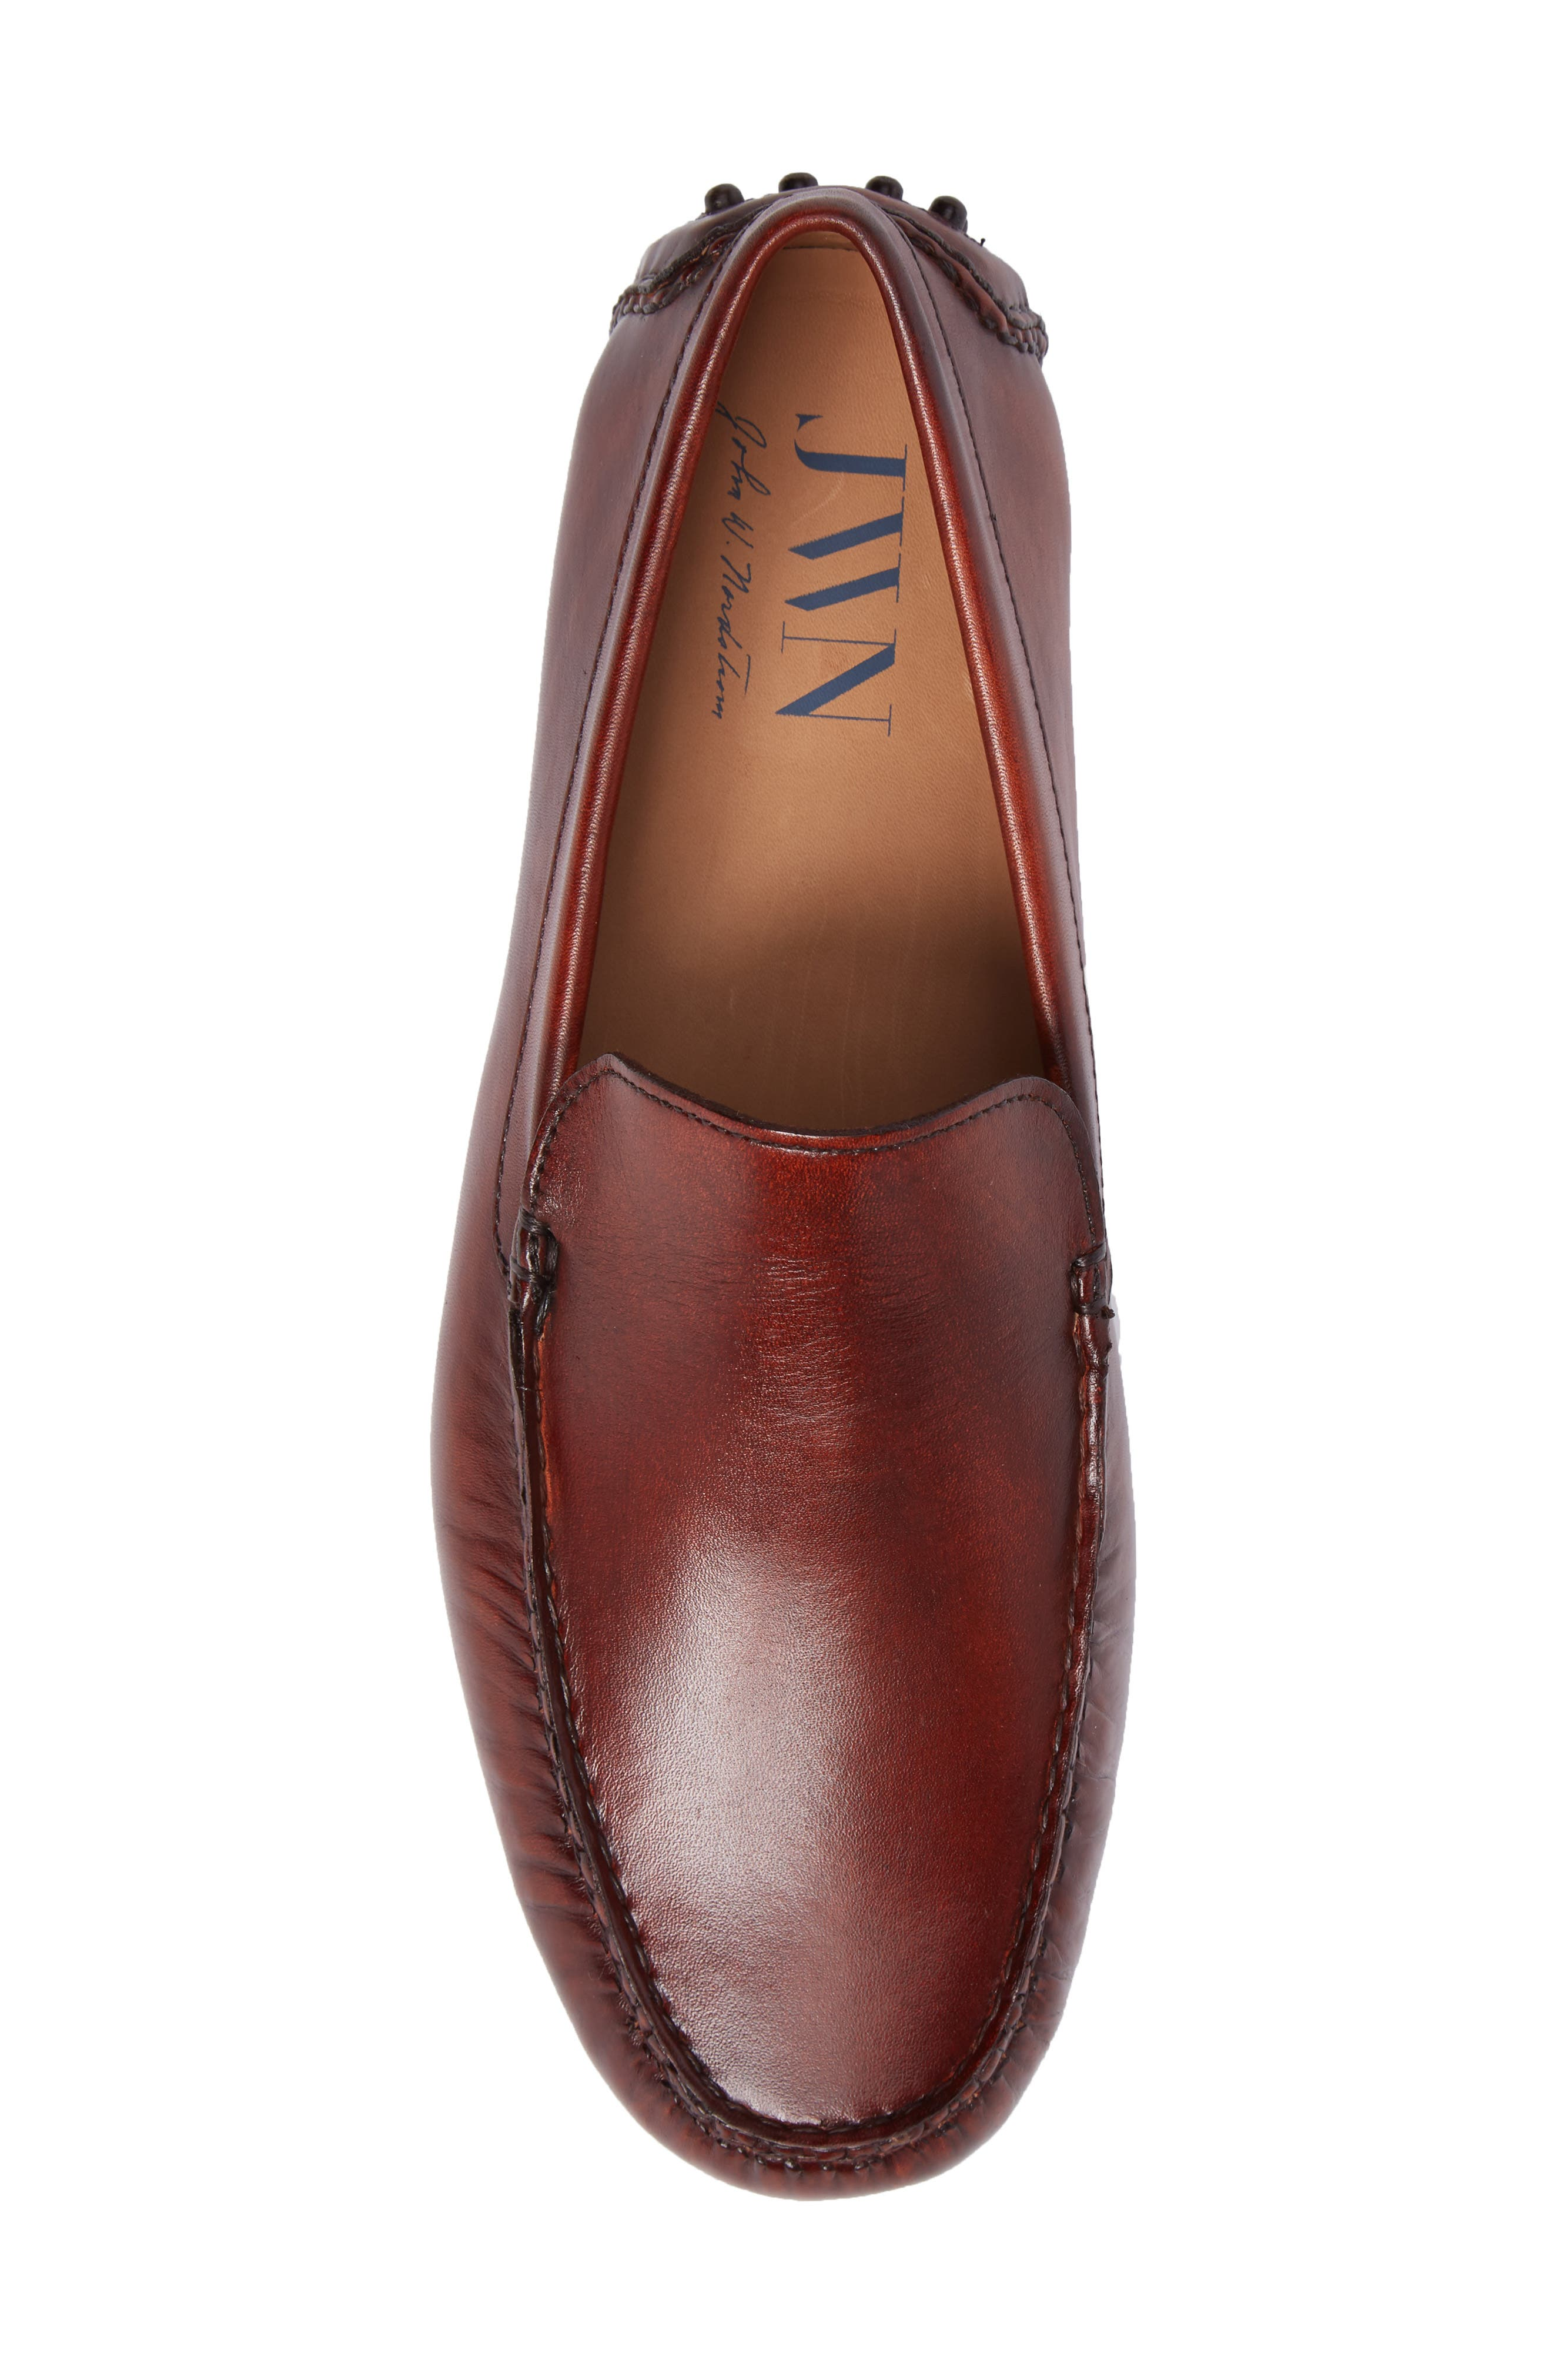 Cane Driving Shoe,                             Alternate thumbnail 5, color,                             TAN LEATHER